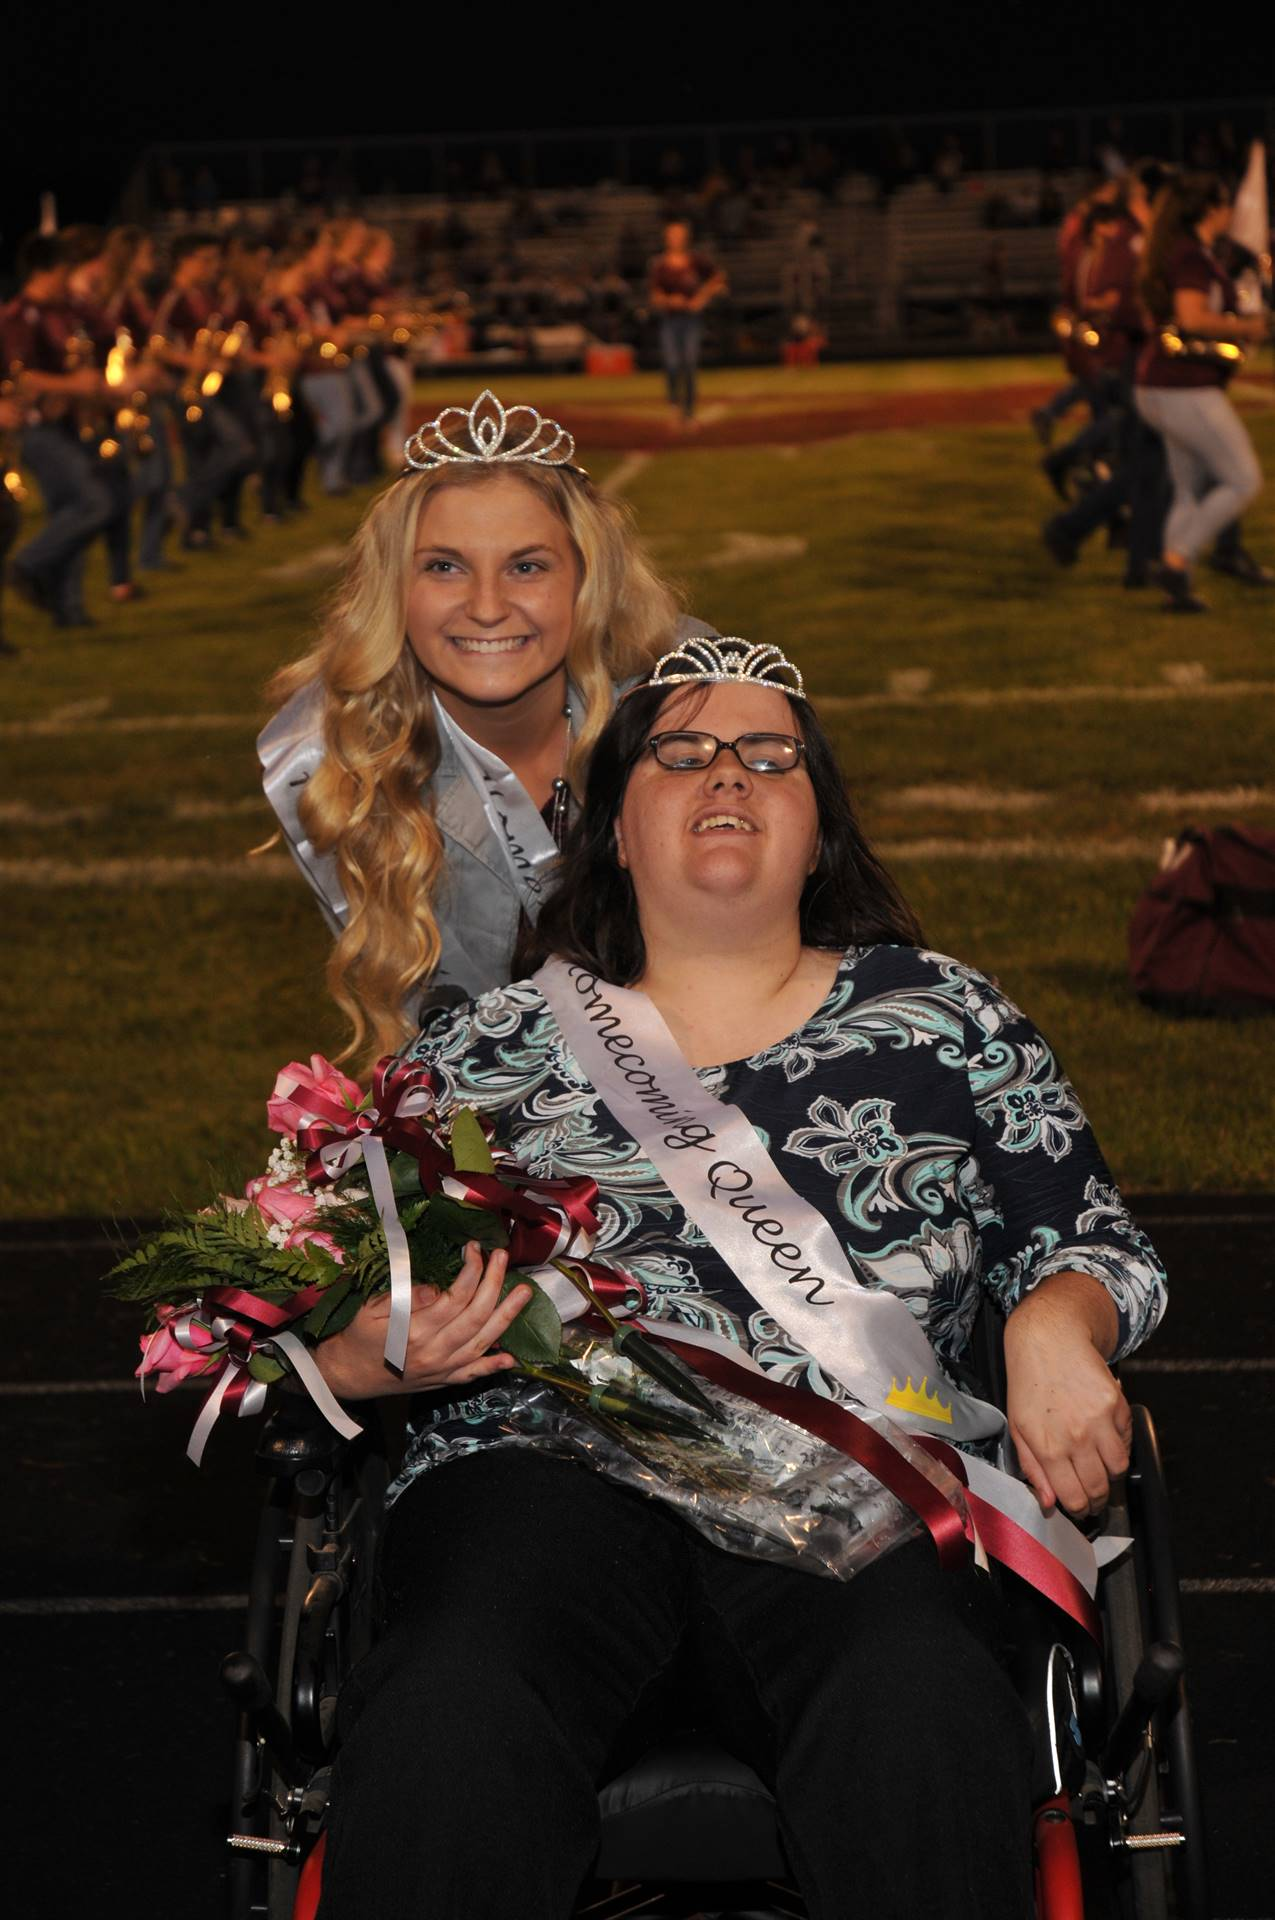 2016 Homecoming Queen Shannon Rogers and 2017 Queen Kelsey Ward